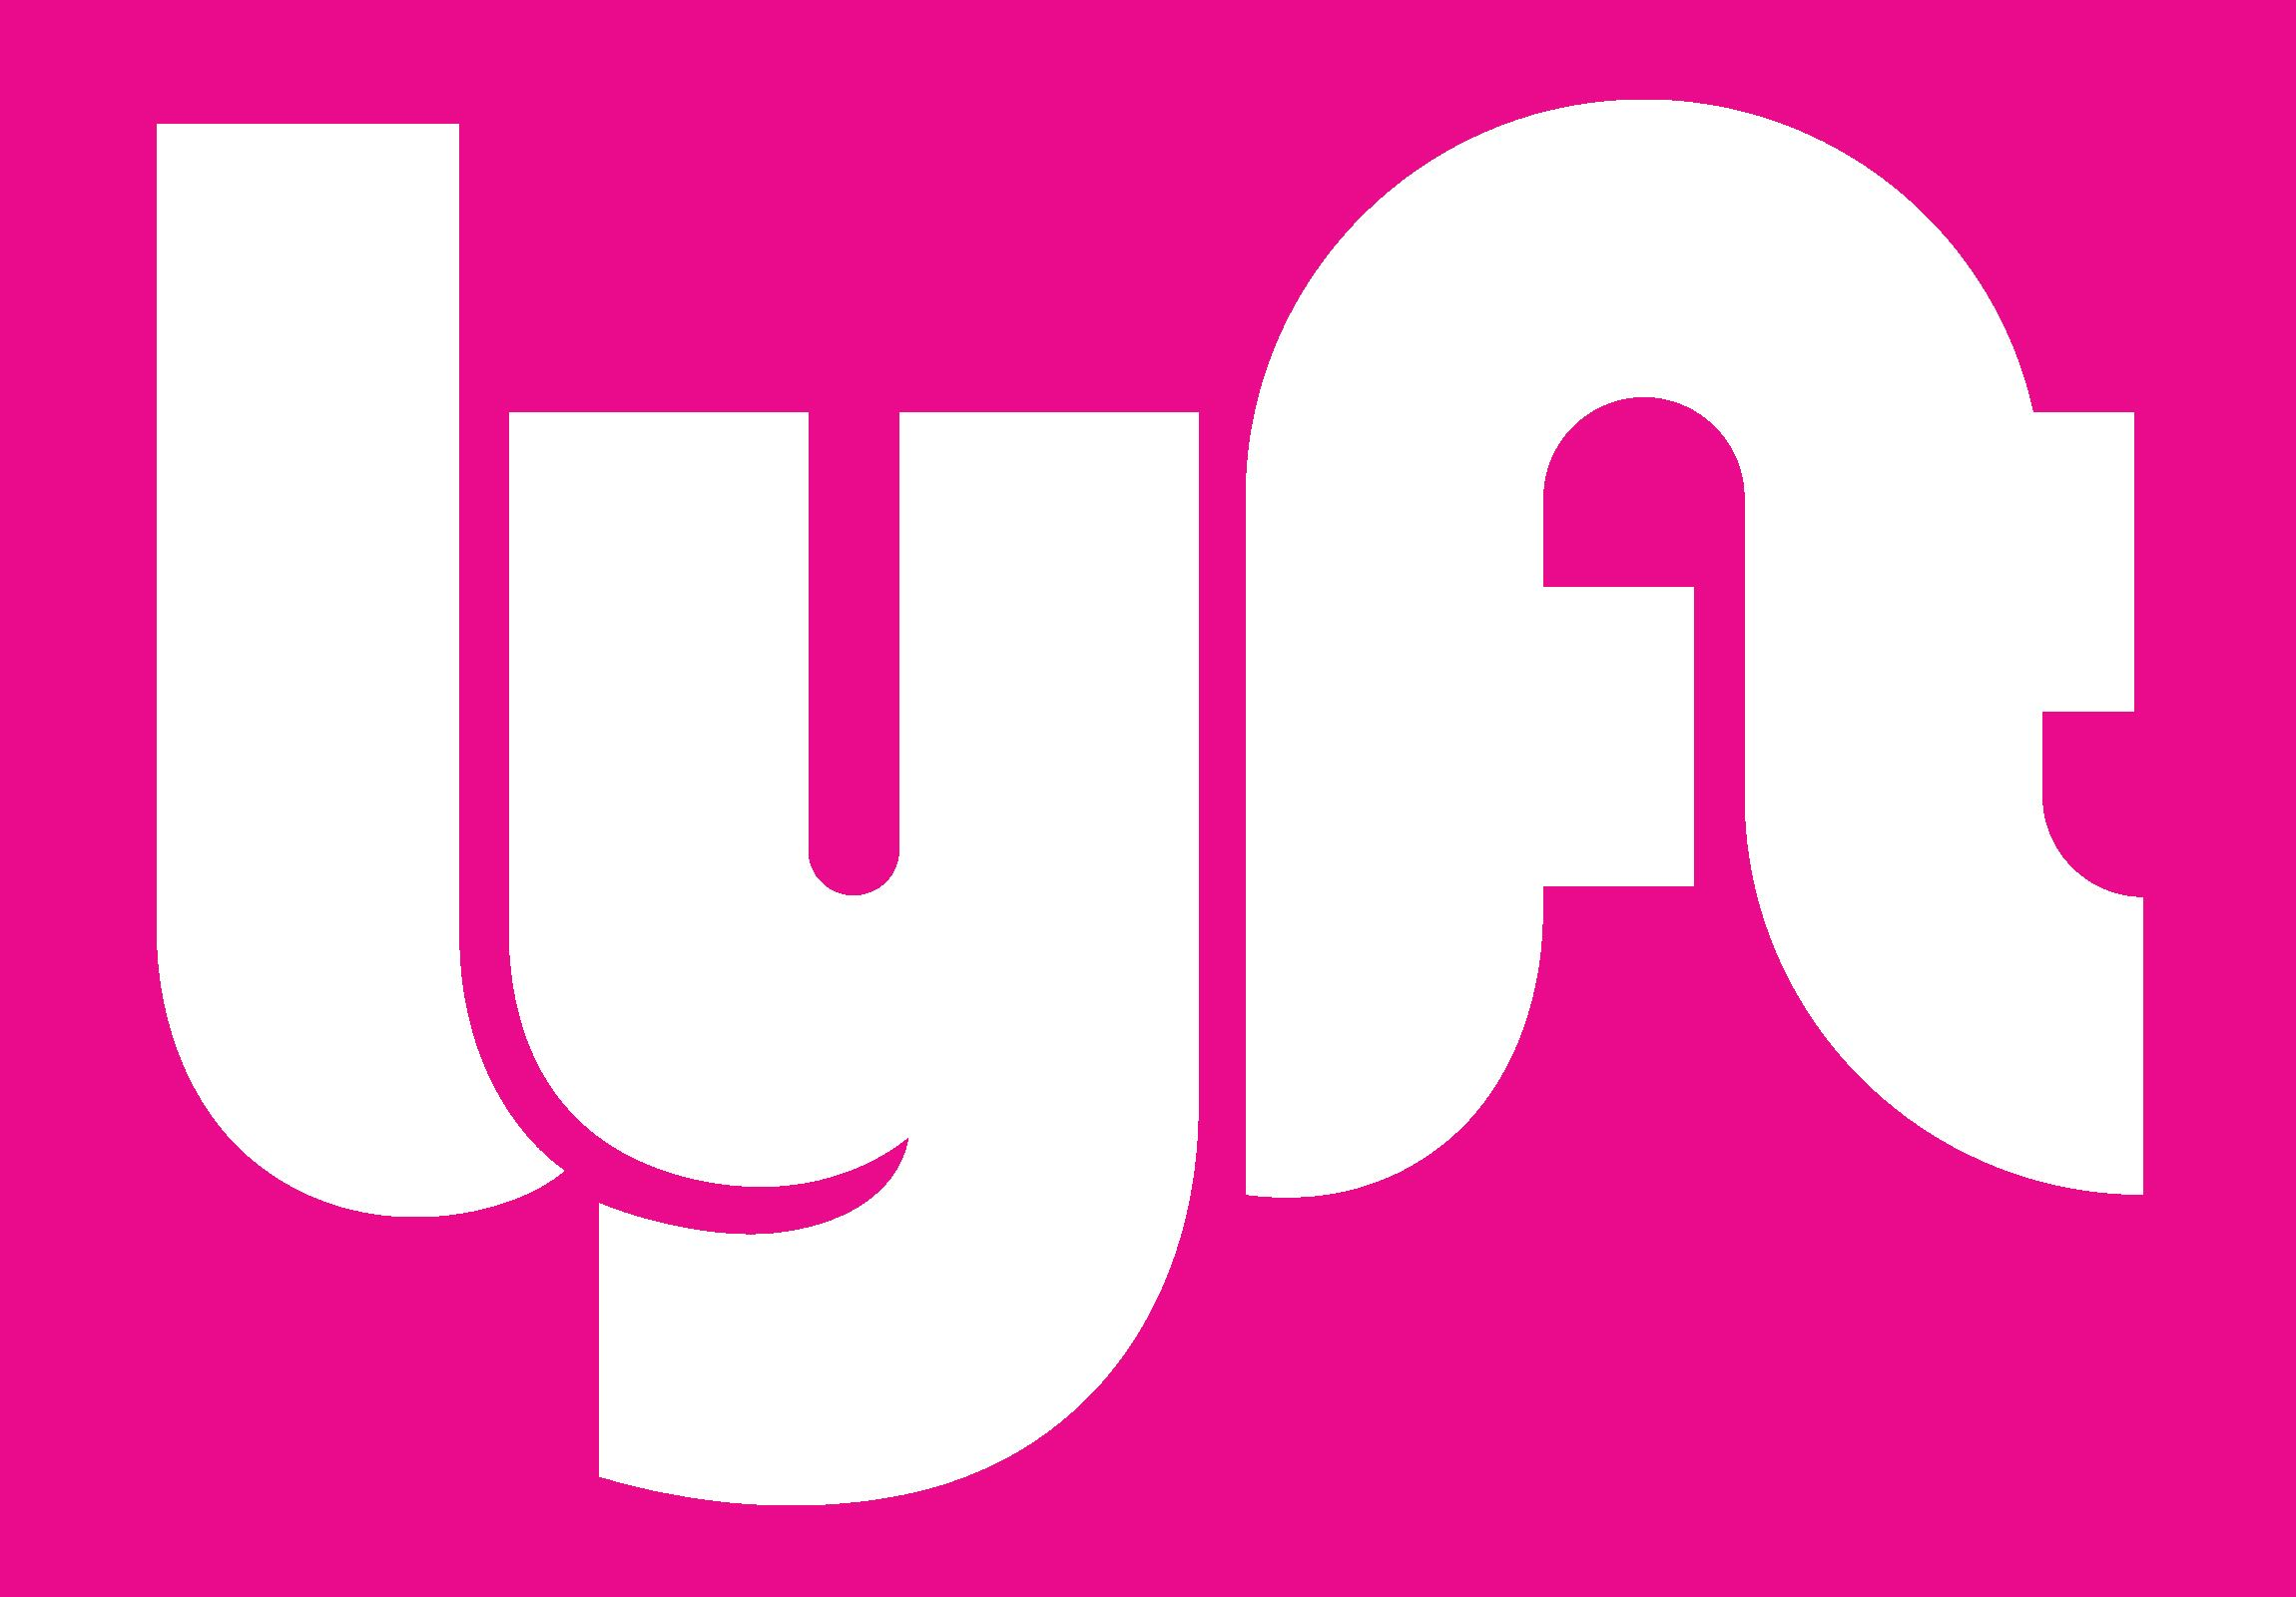 Emblem-Lyft Opens in new window